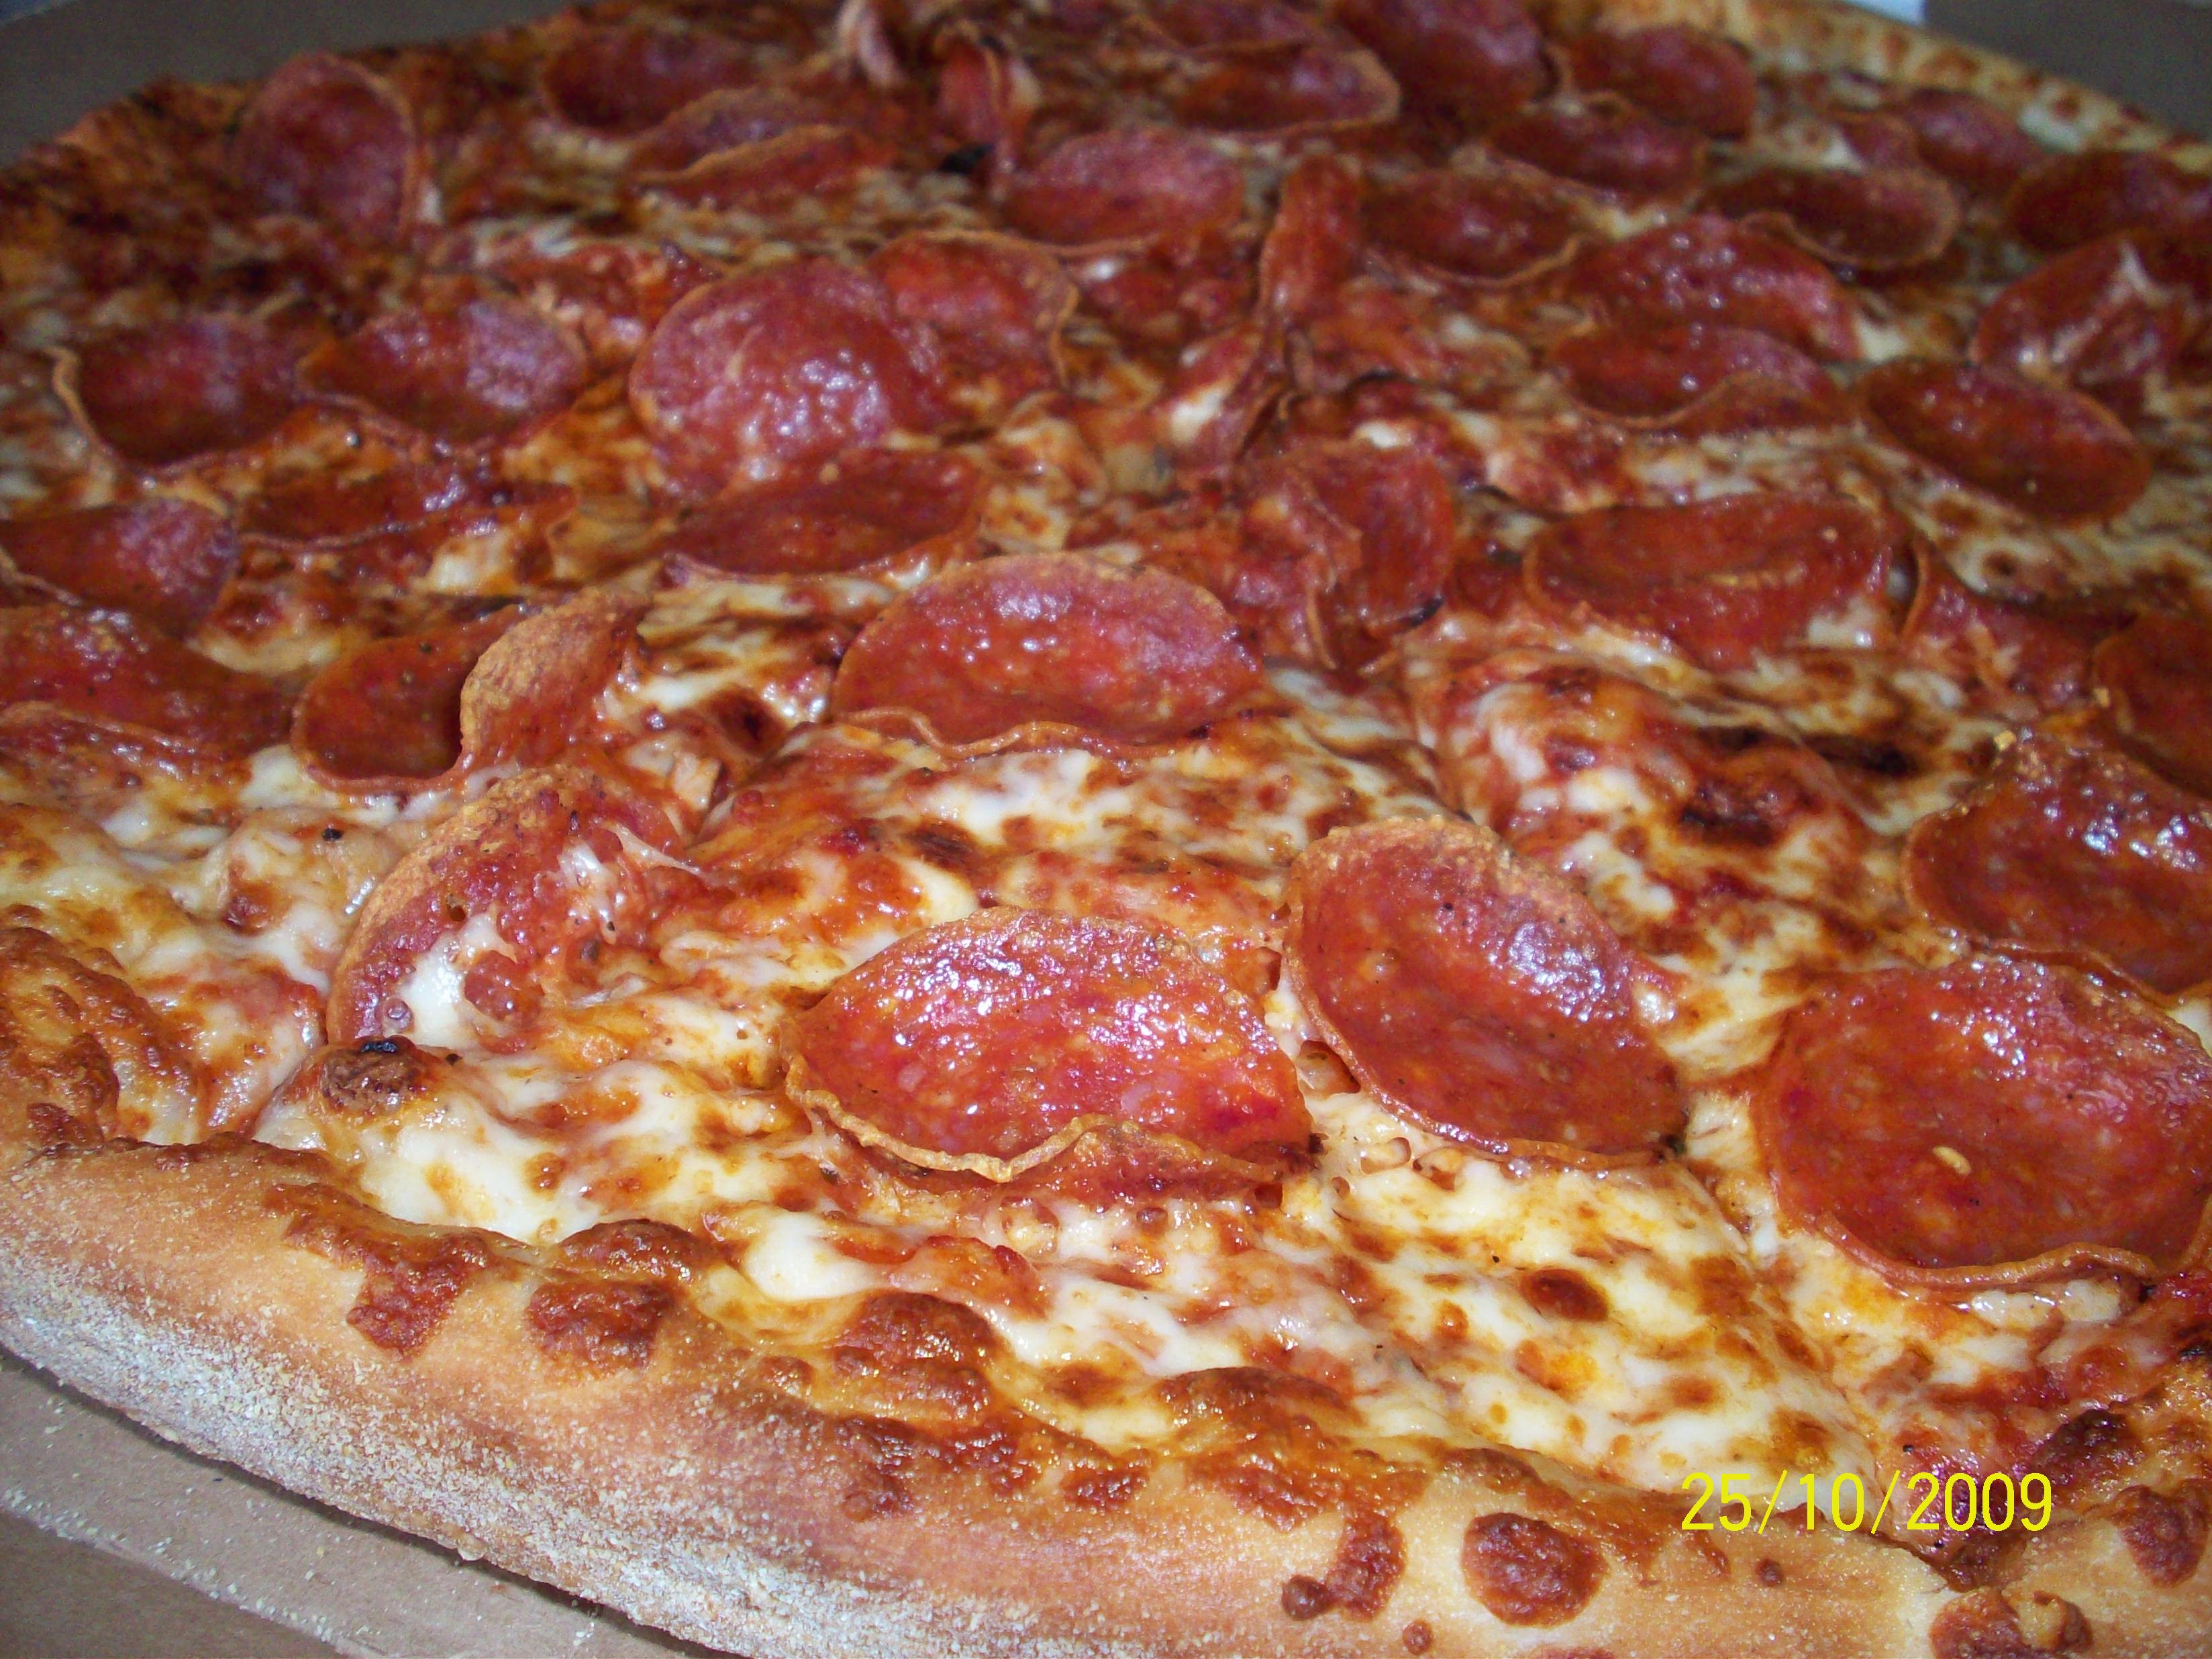 http://foodloader.net/cutie_2009-10-25_Pepperoni_Pizza.jpg